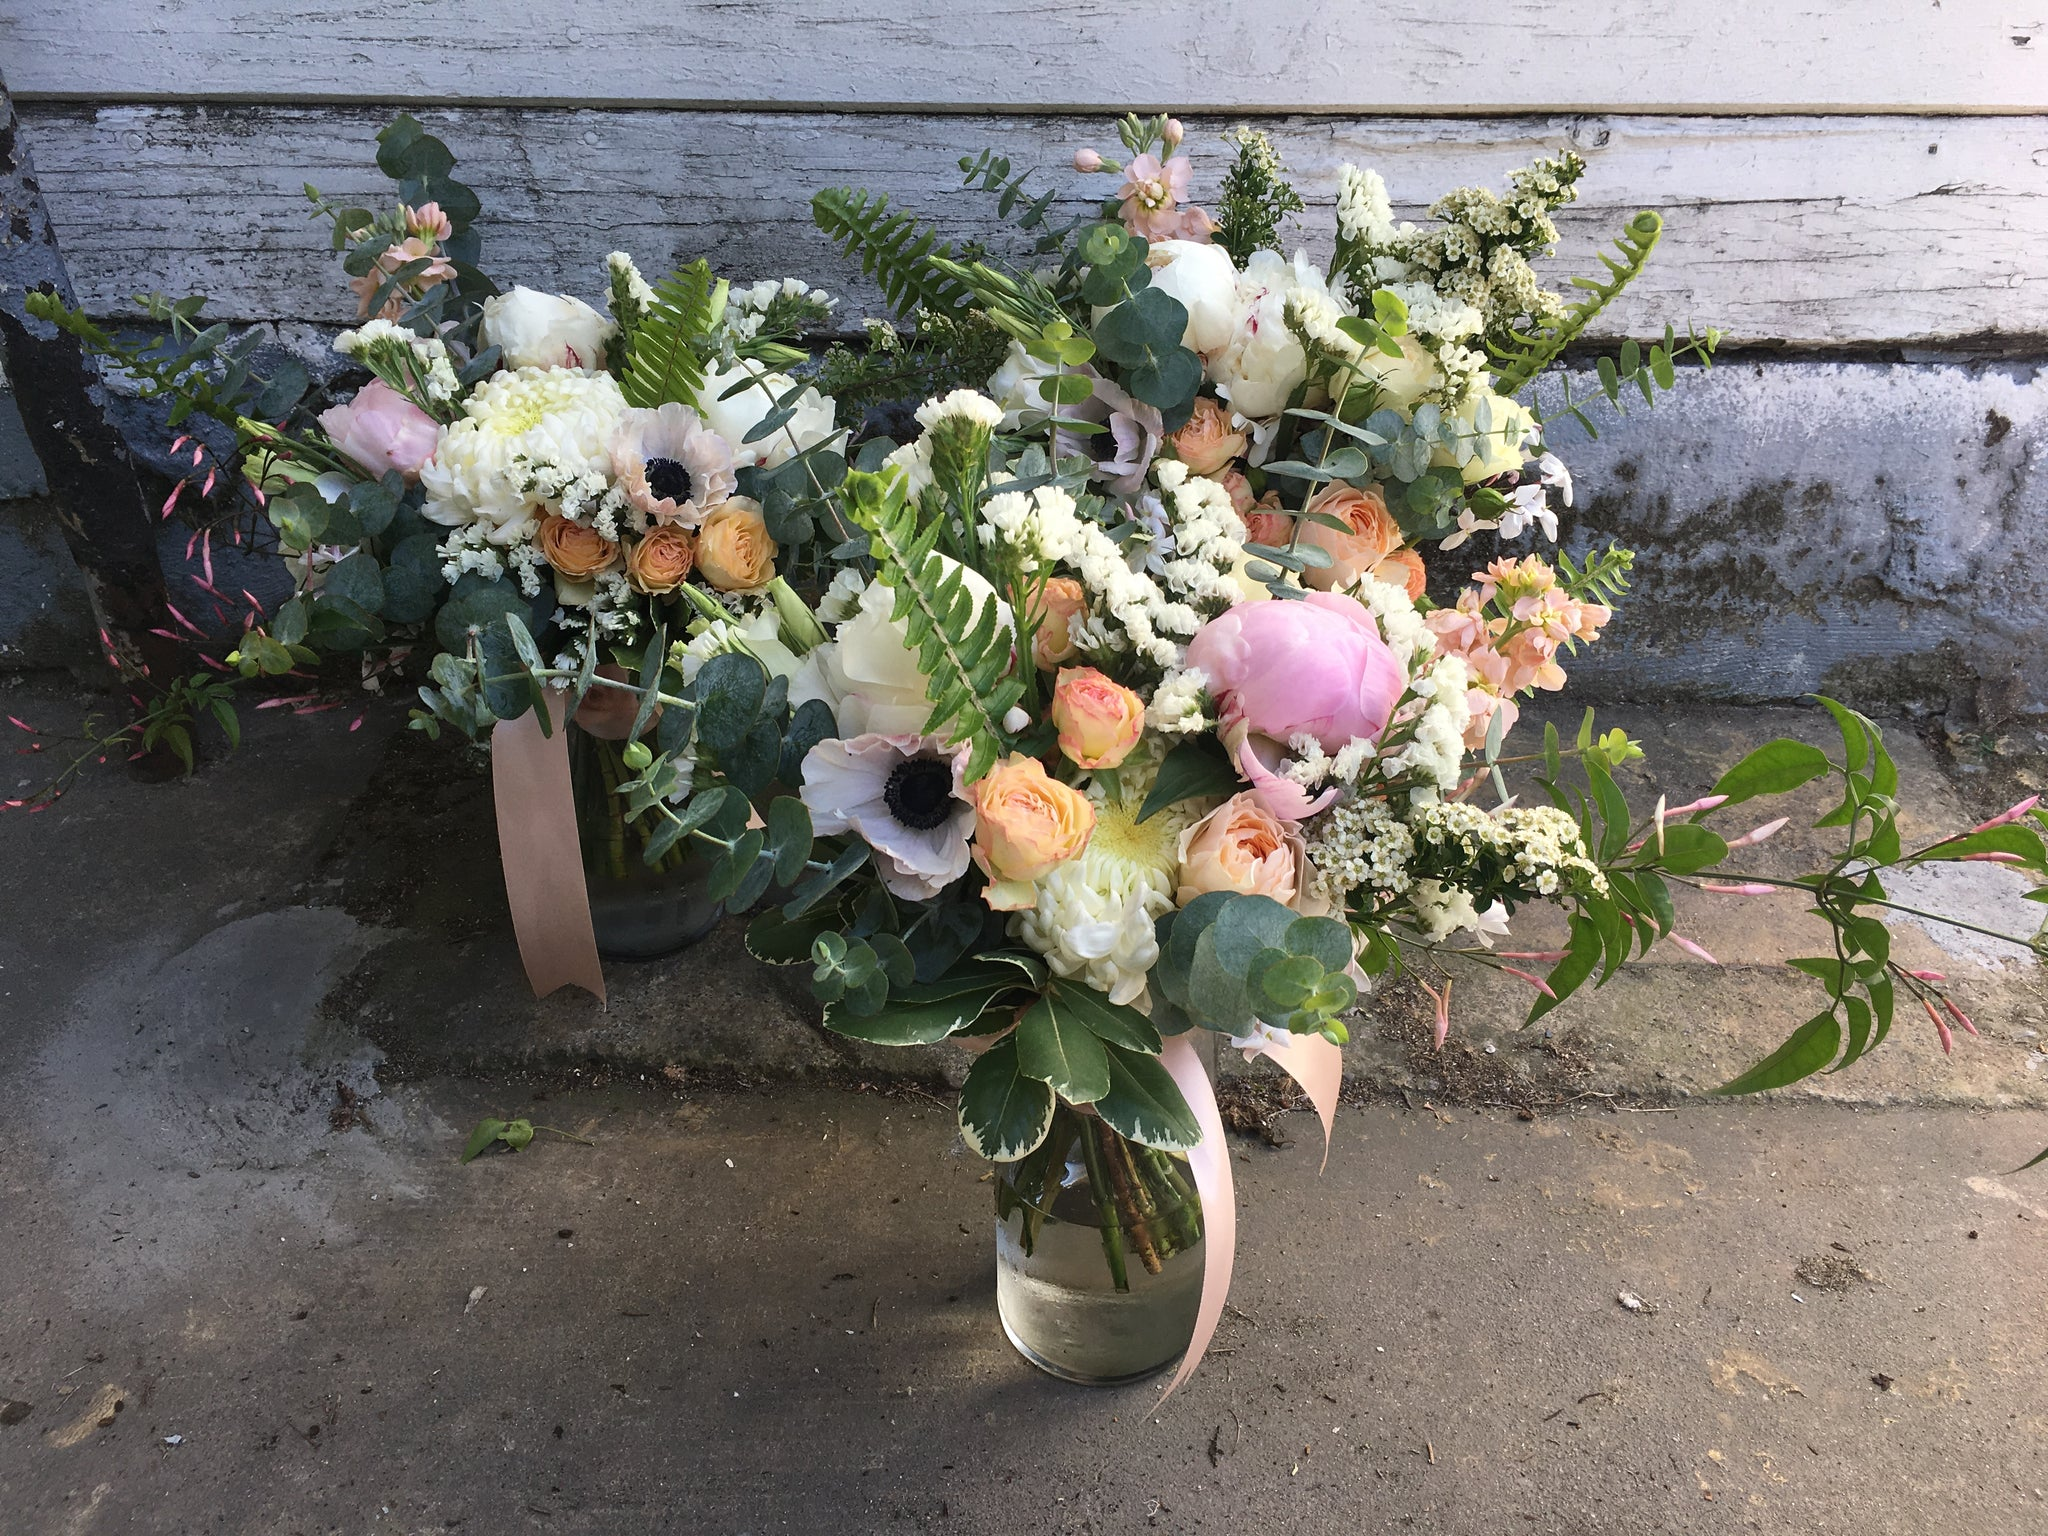 Bridesmaid bouquets in blush and whites by Gorgeous and Green for a local wedding.